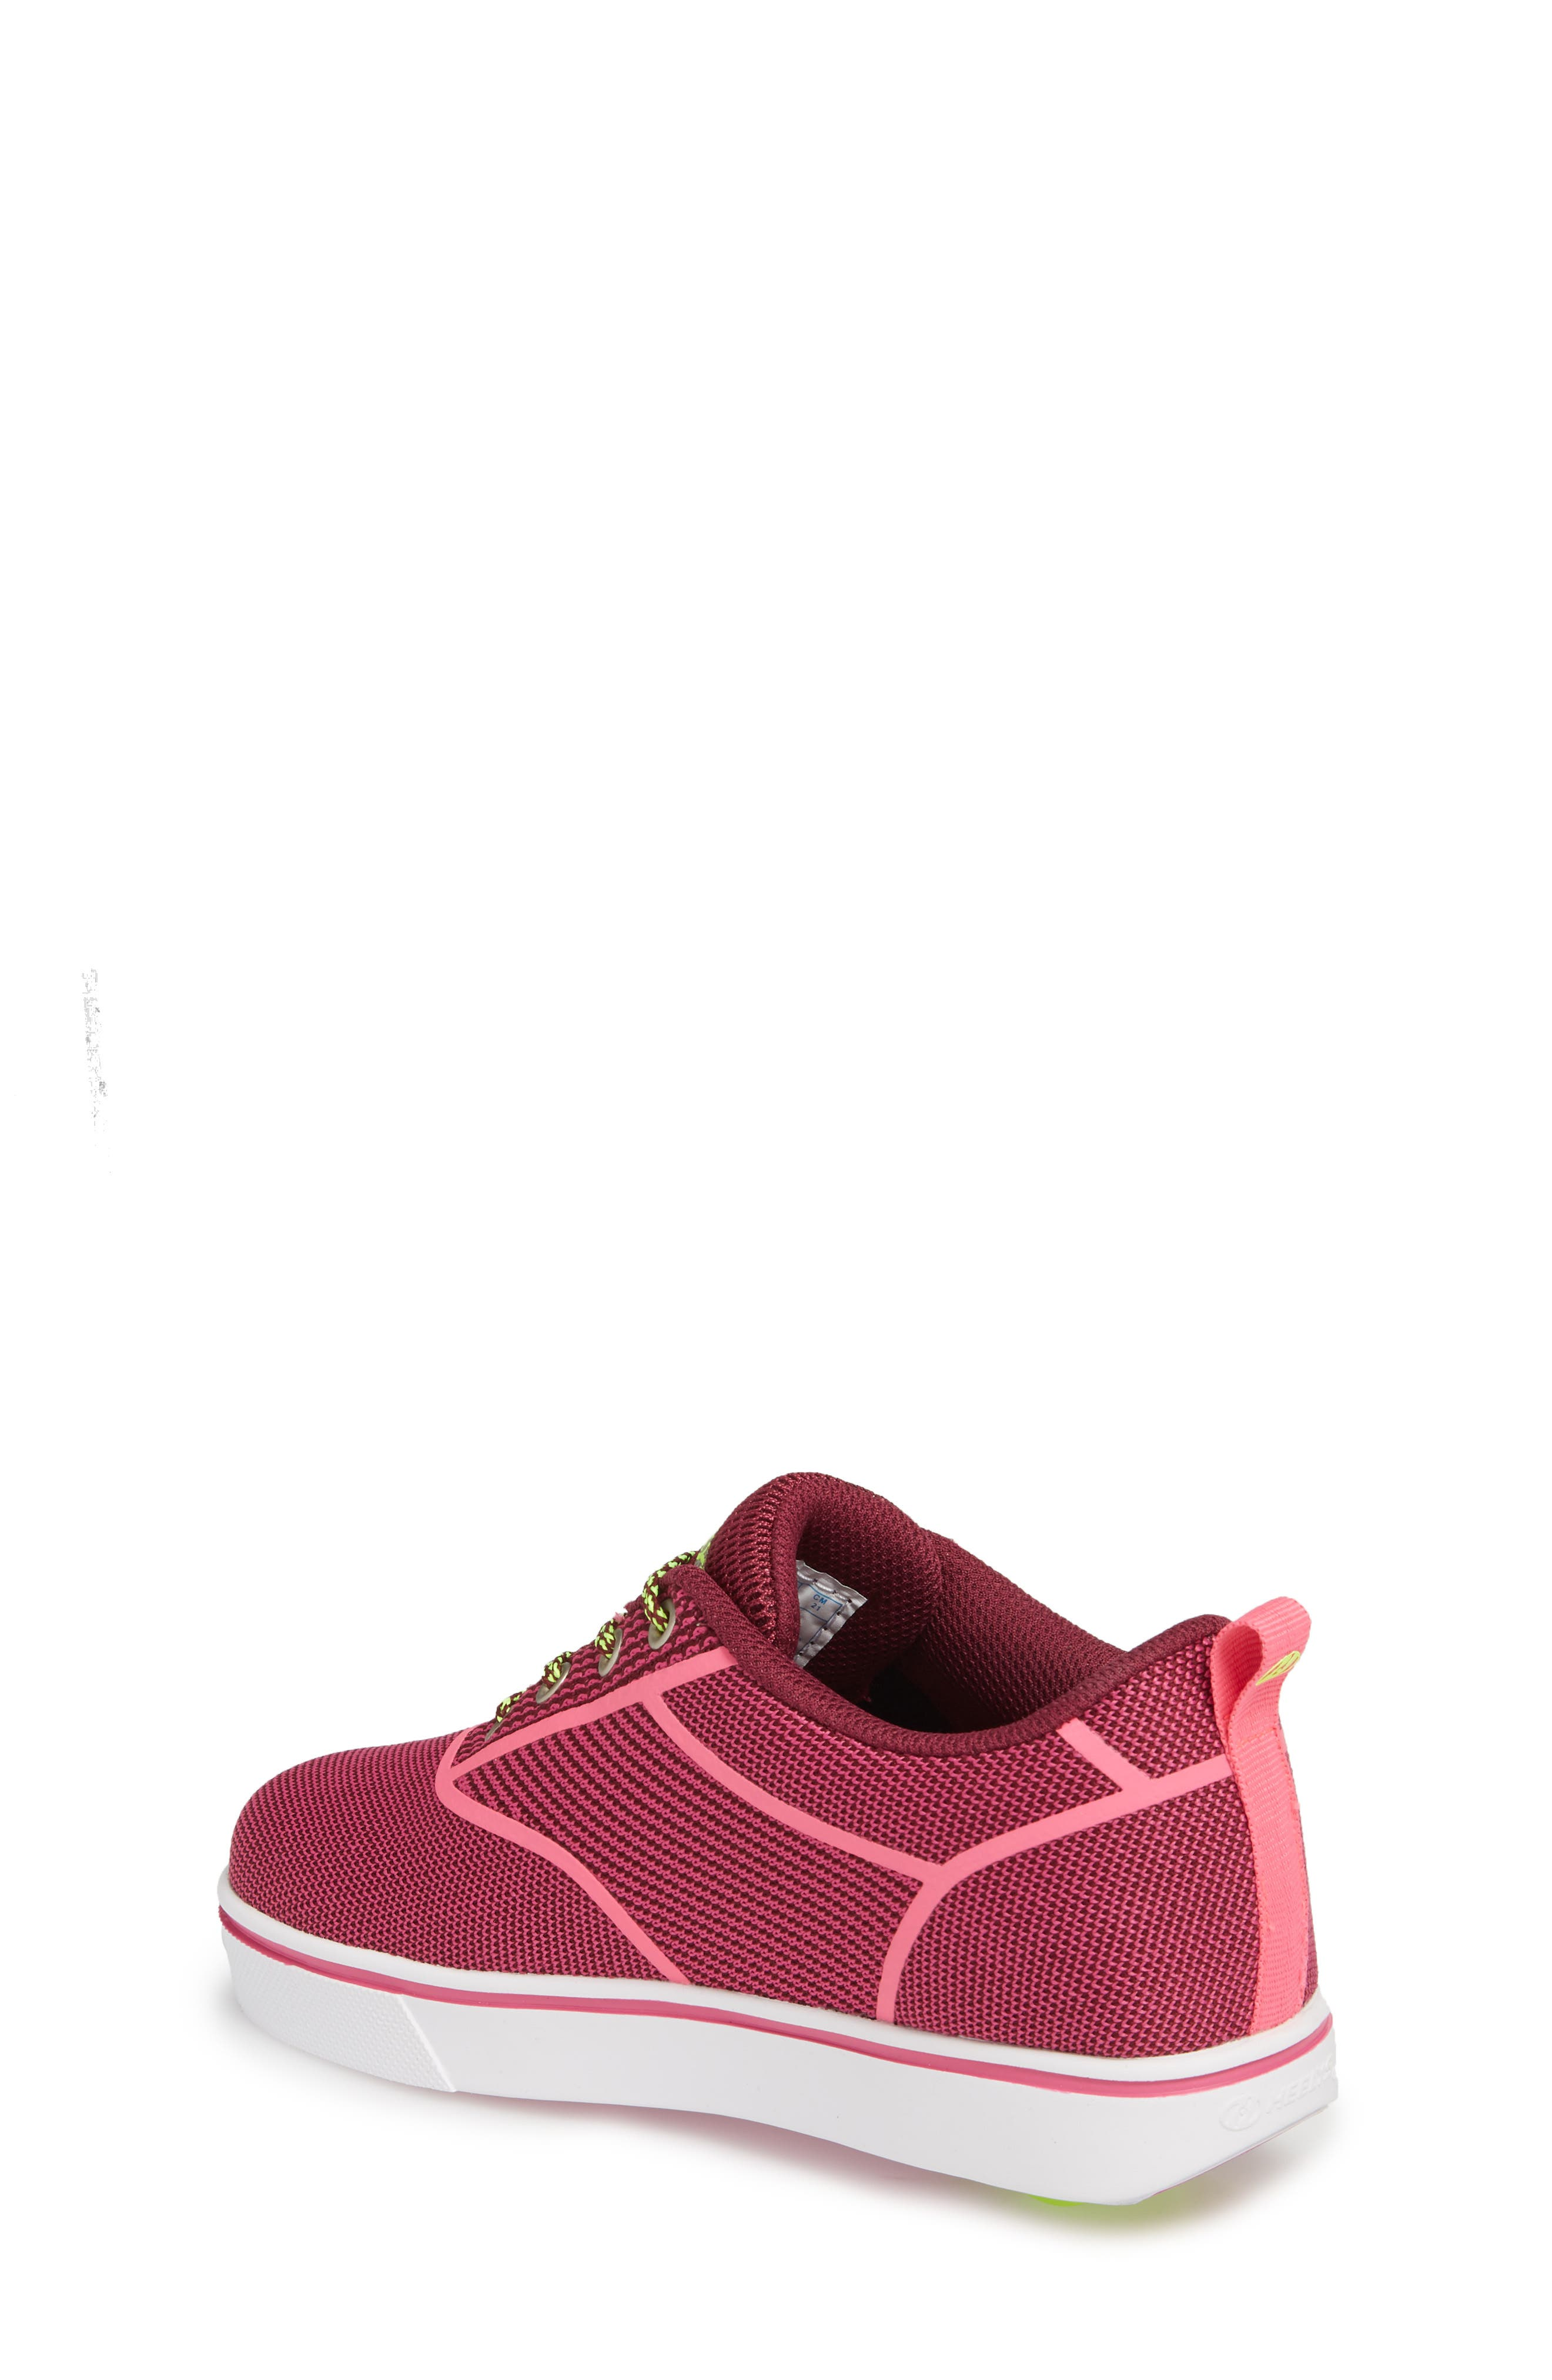 Launch Knit Sneaker,                             Alternate thumbnail 2, color,                             Berry/ Pink